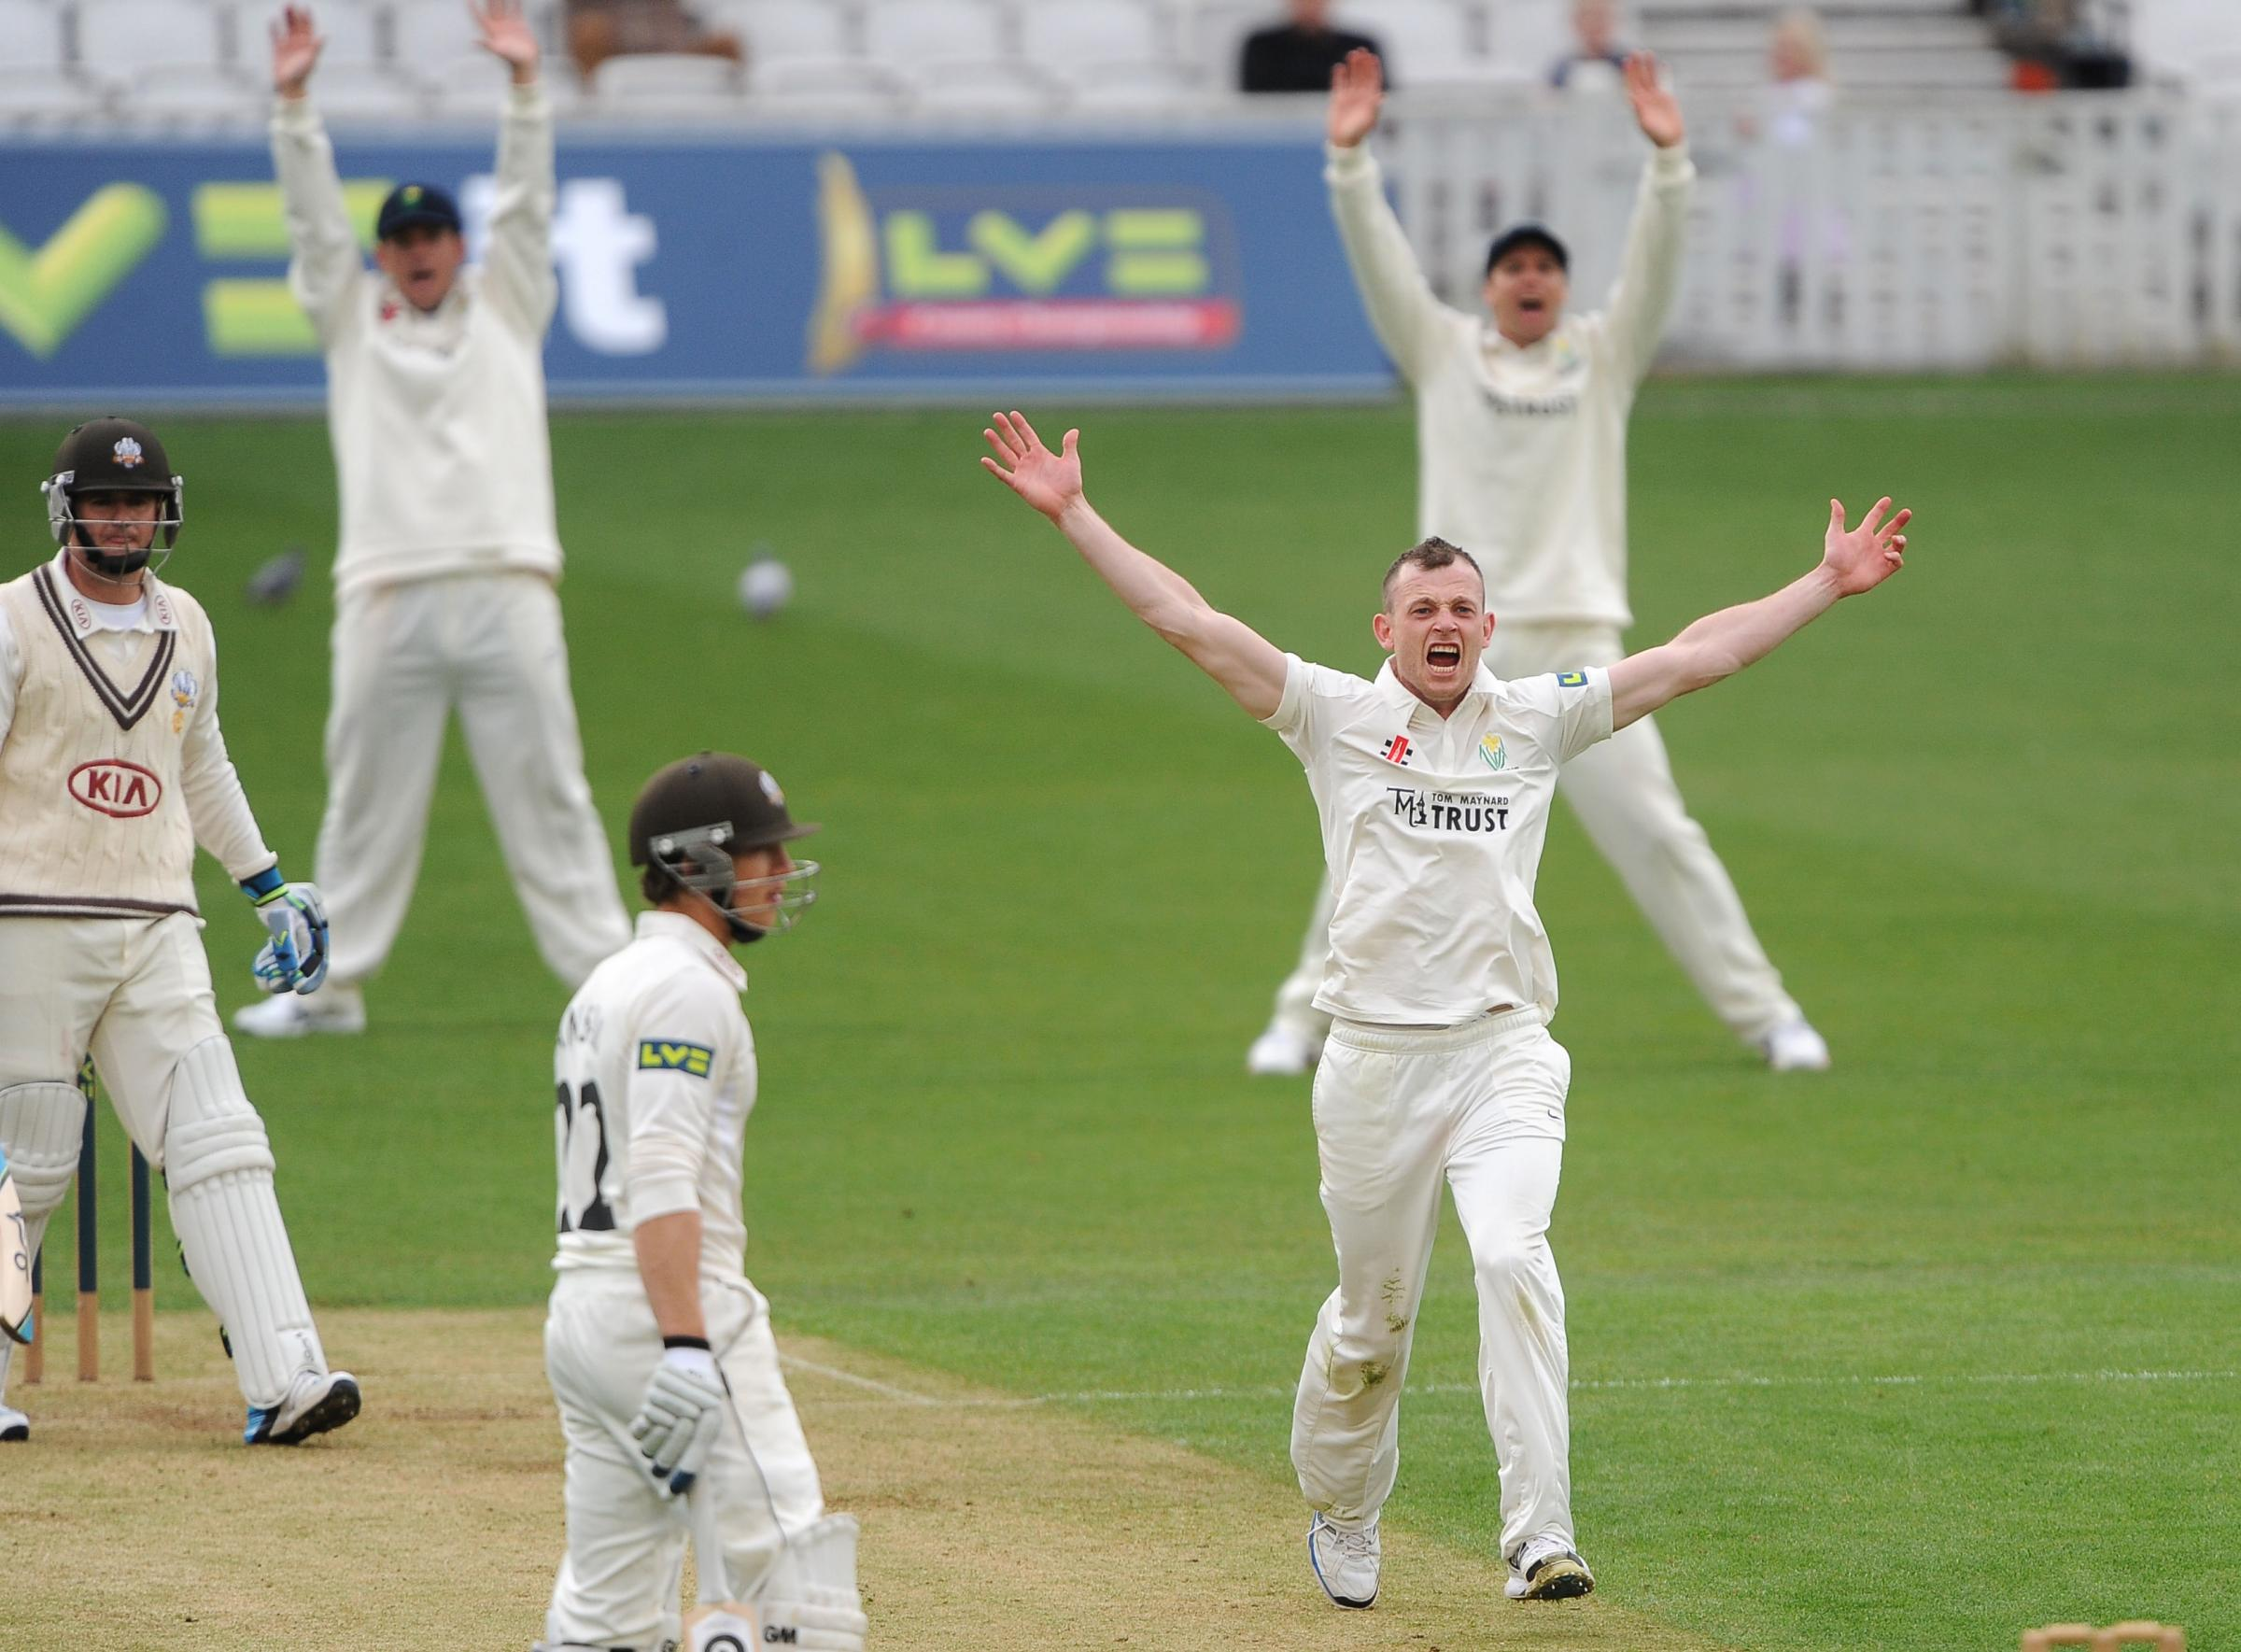 Glamorgan's Graham Wagg appeals to the umpire for the wicket of Surrey's Steven Davies during